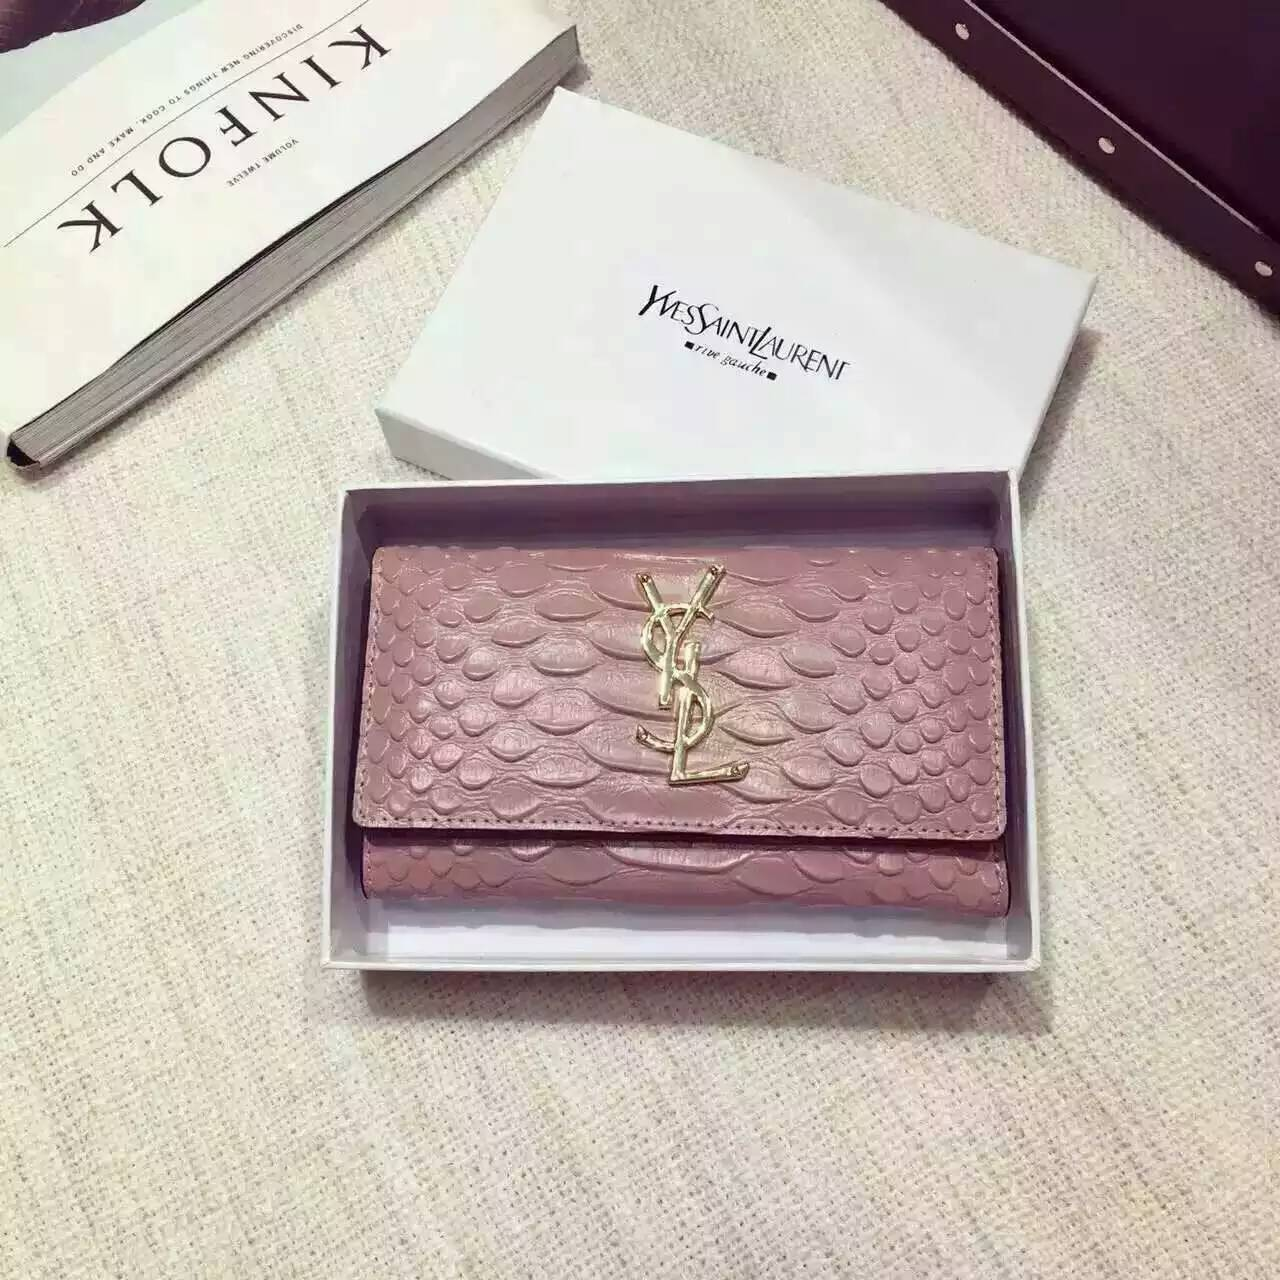 Limited Edition!2016 New Saint Laurent Small Leather Goods Cheap Sale-Saint Laurent Wallet in Pink Python Embossed Leather